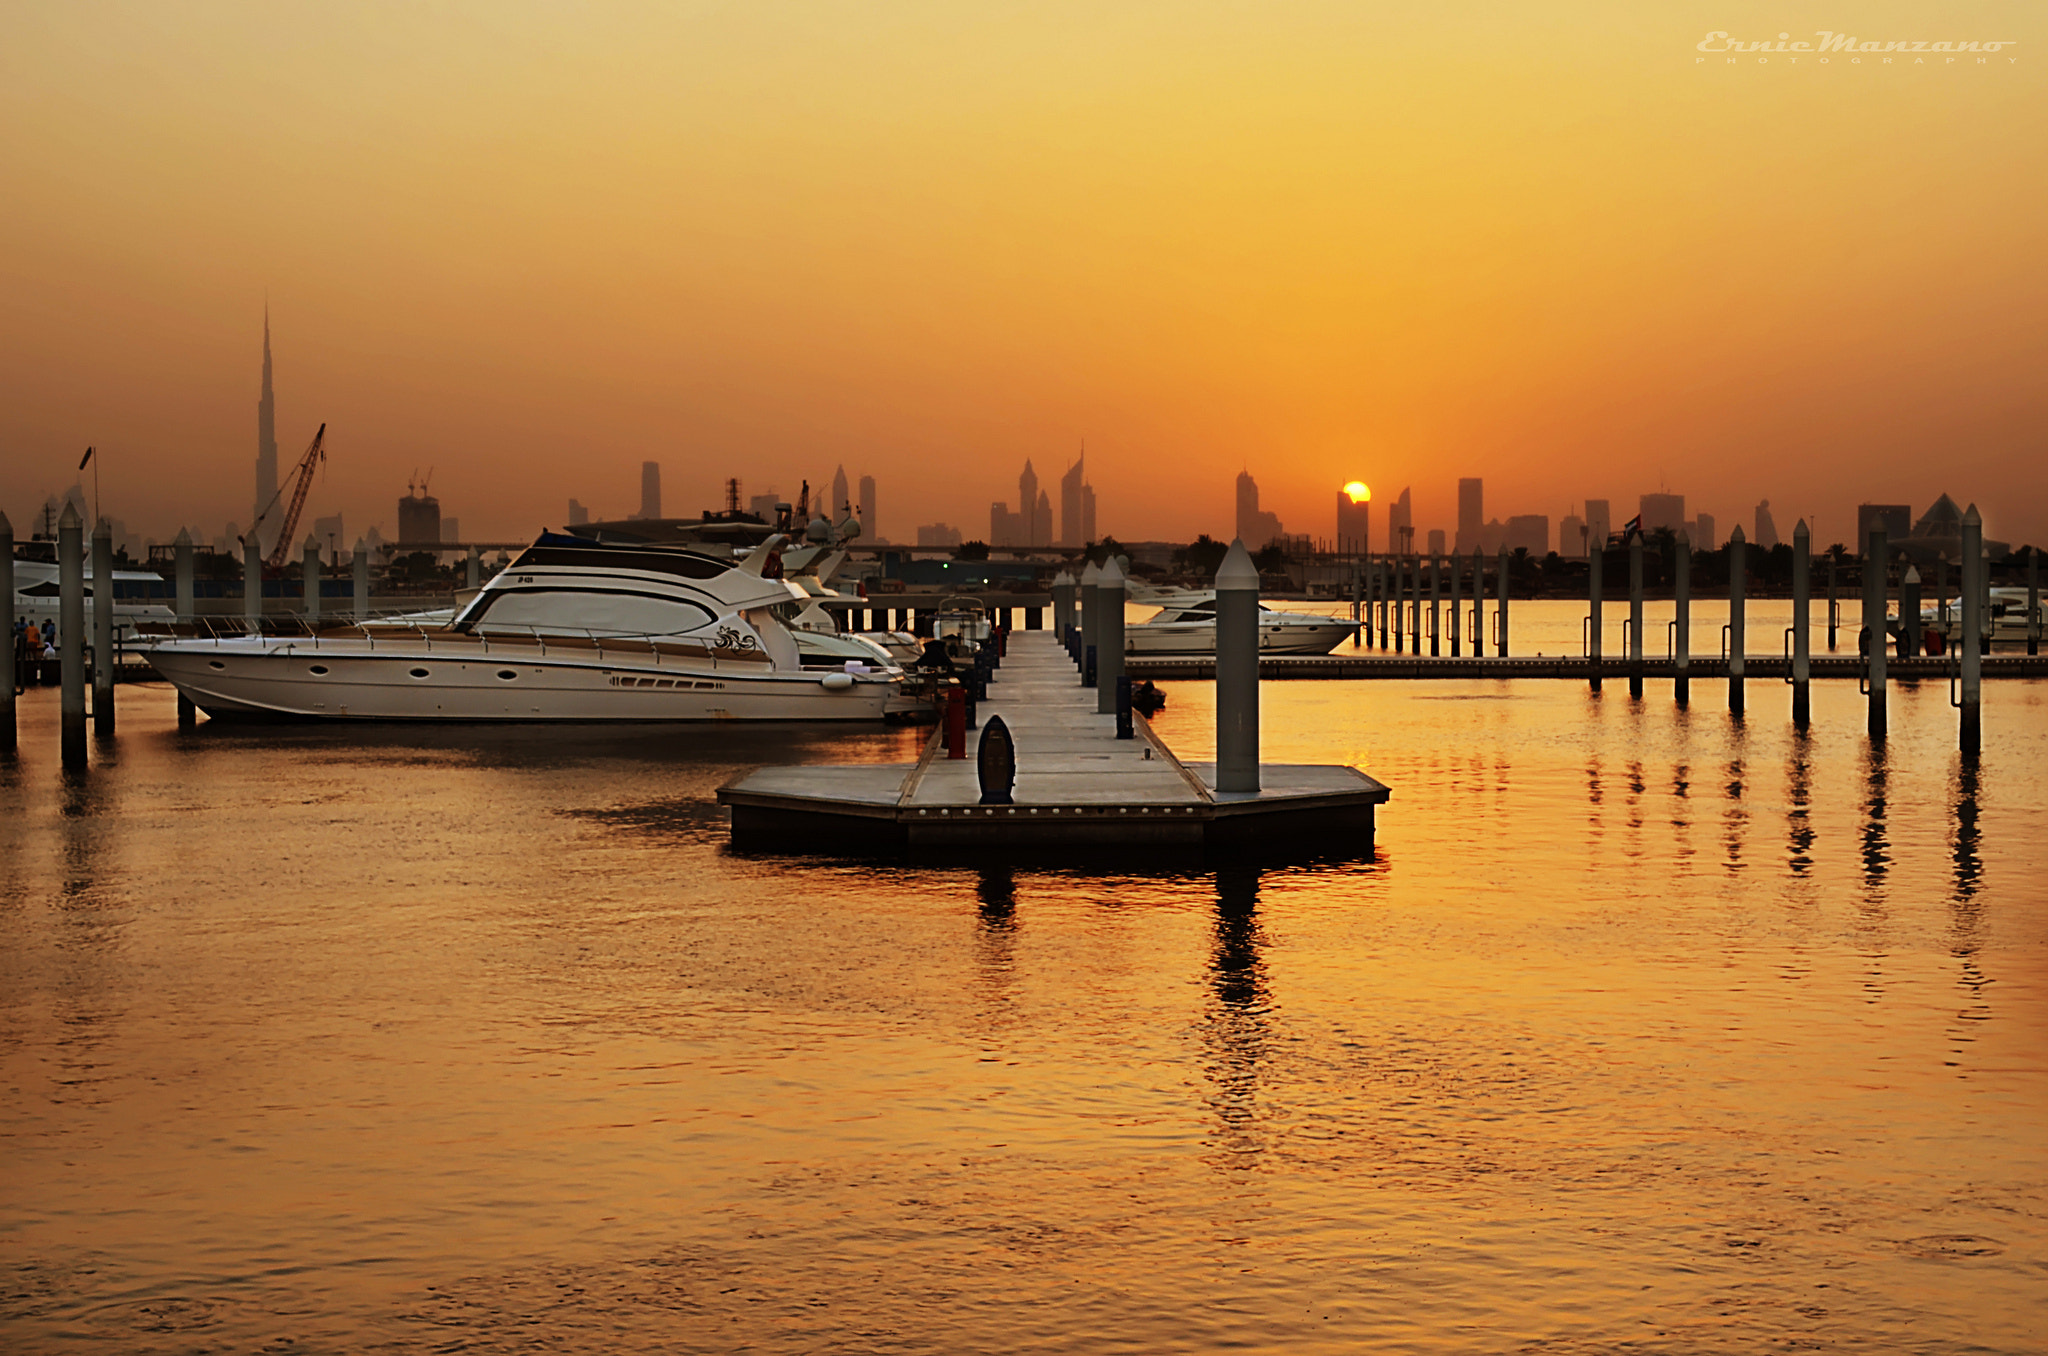 Photograph Dubai's Golden Sunset by Ernie Manzano on 500px